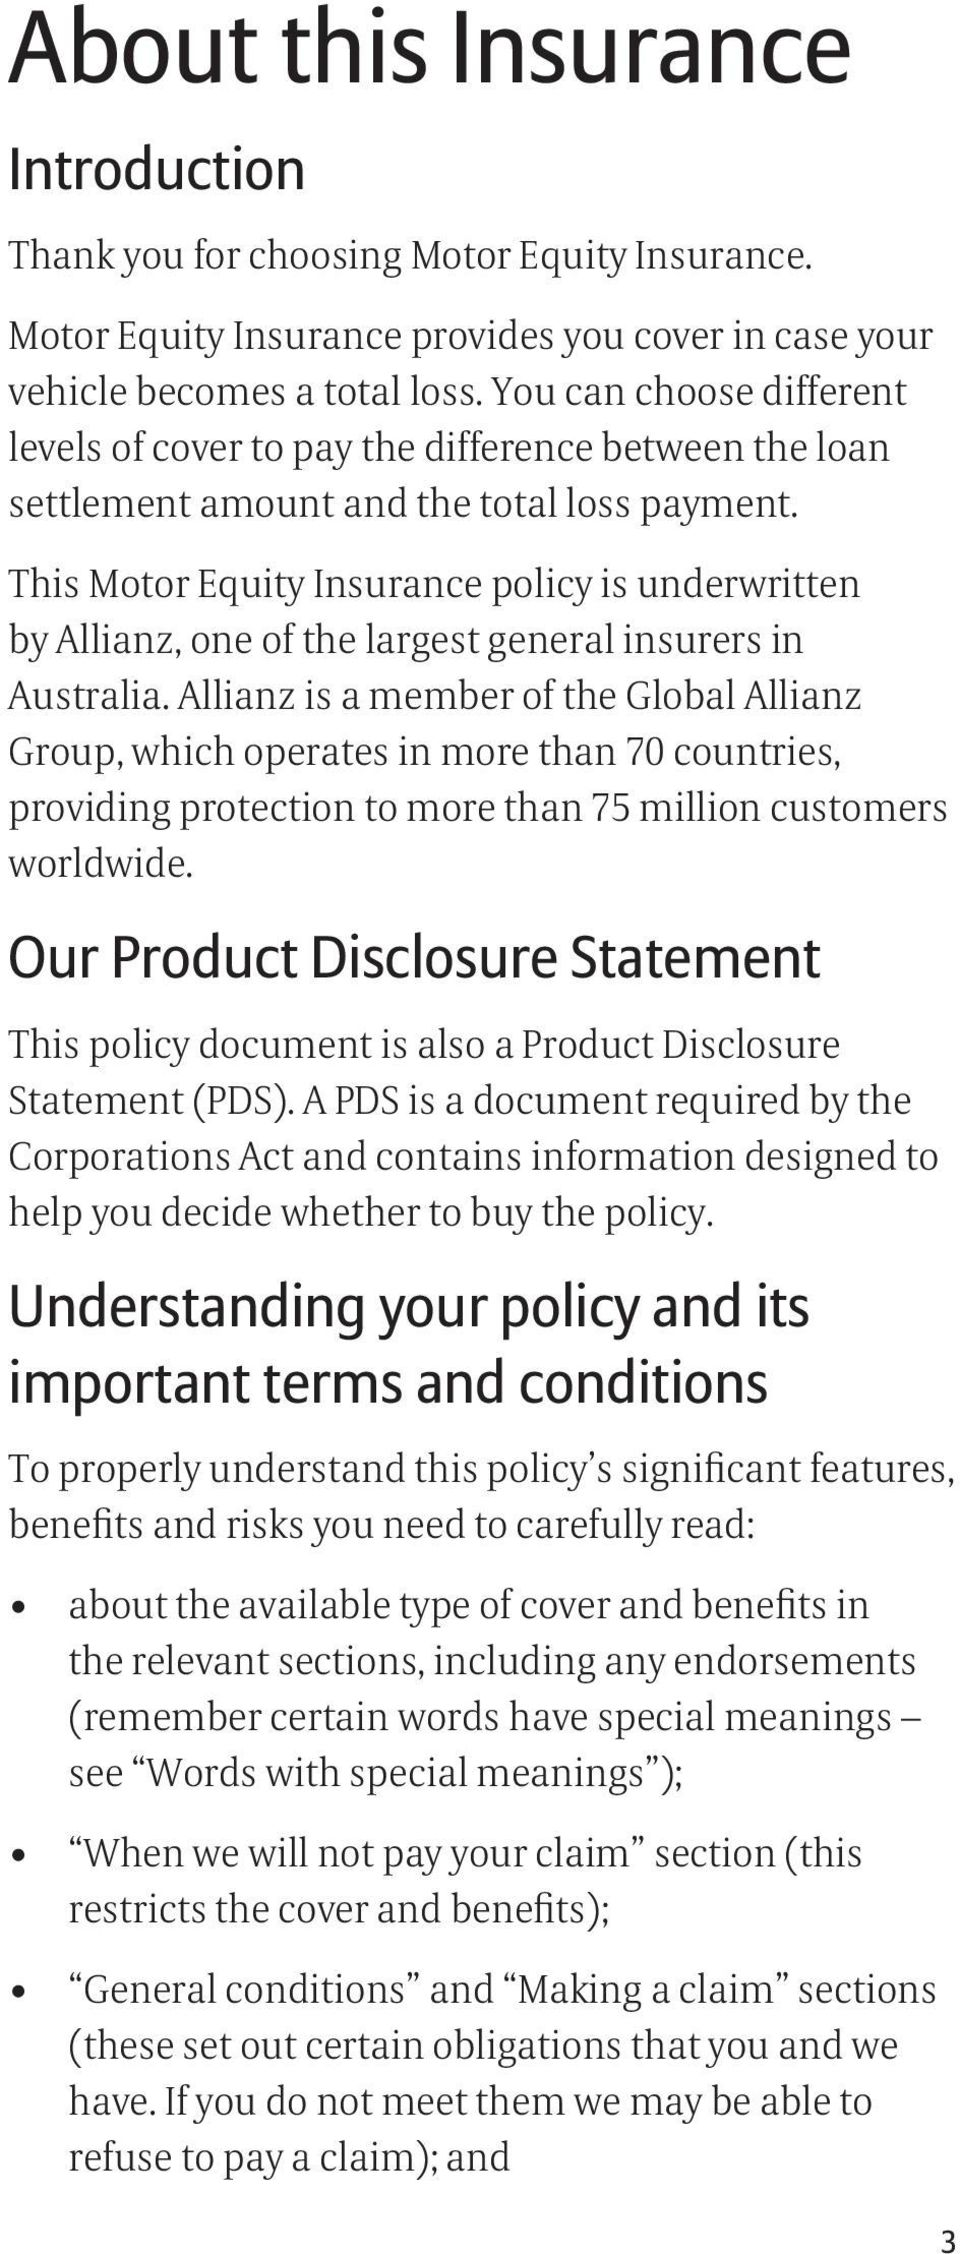 This Motor Equity Insurance policy is underwritten by Allianz, one of the largest general insurers in Australia.